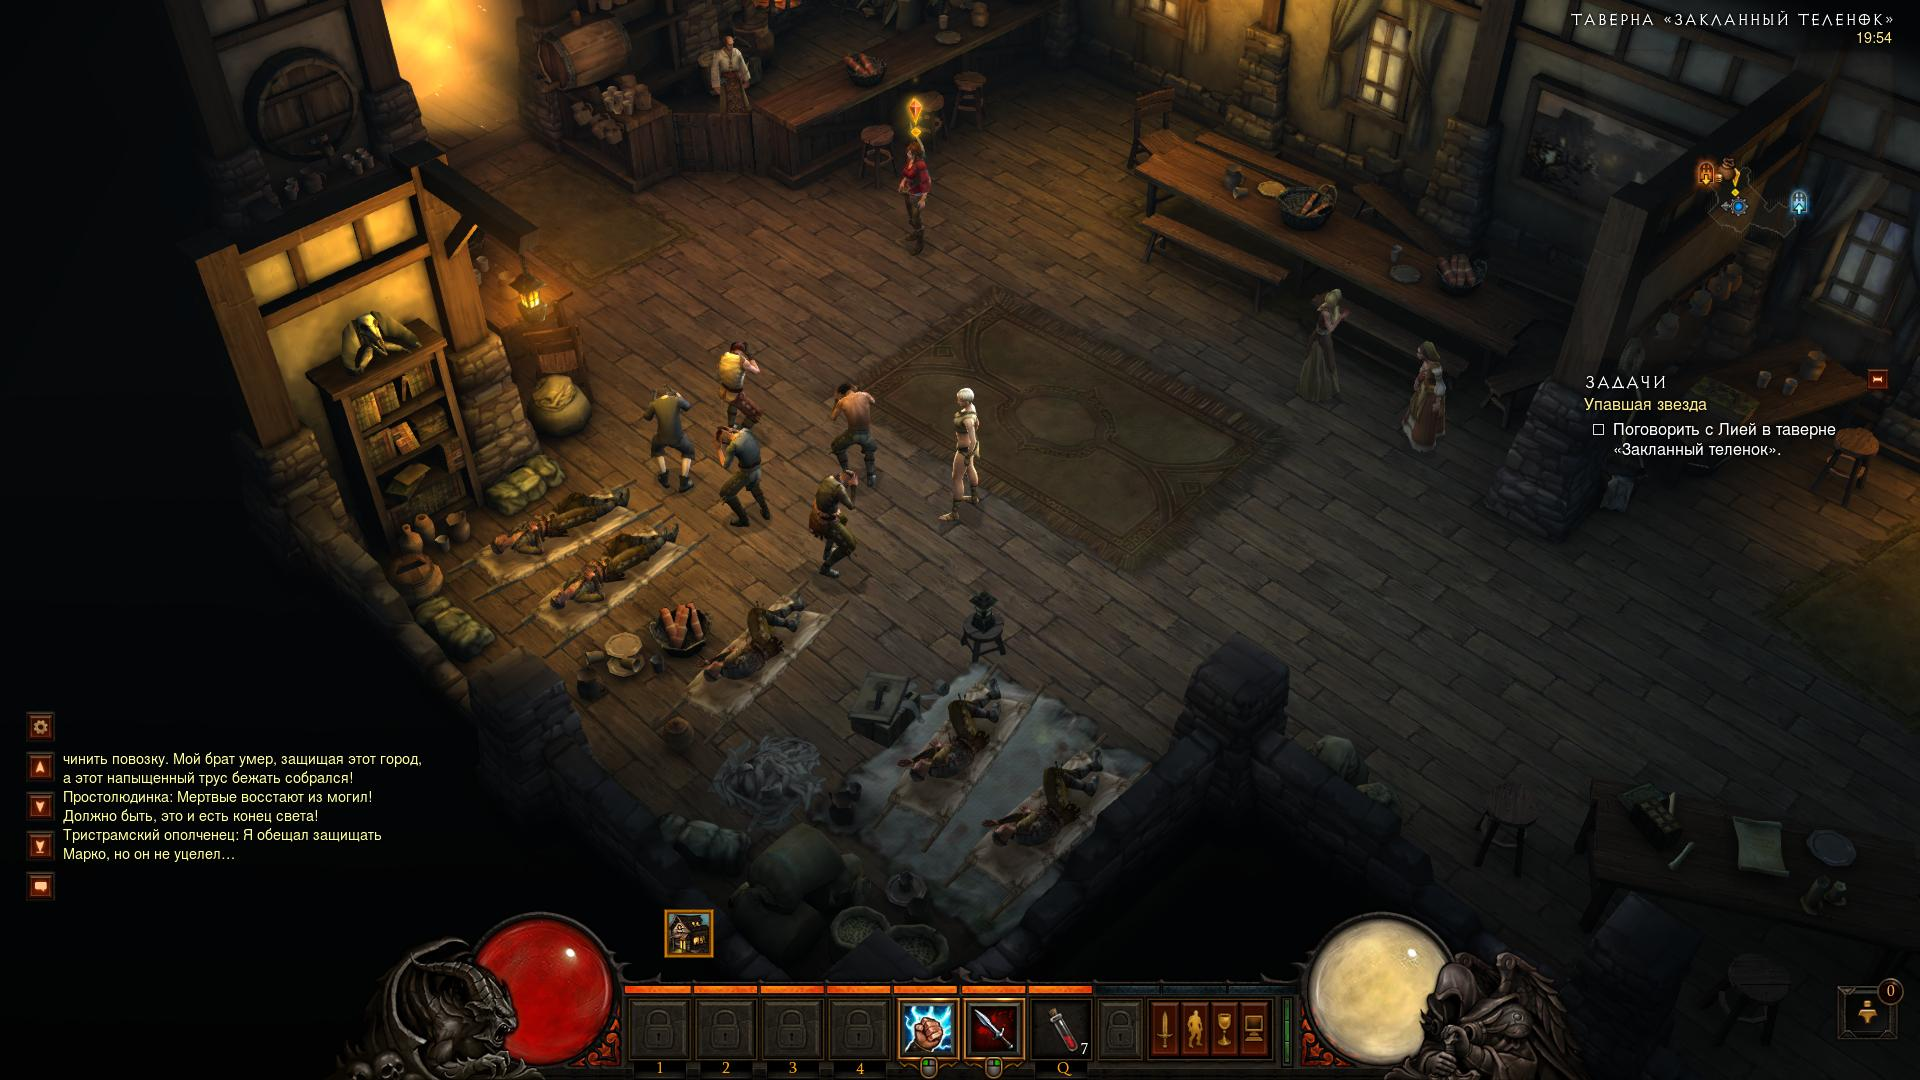 Blizzards confirms Diablo III: Eternal Collection for Xbox One - MSPoweruser